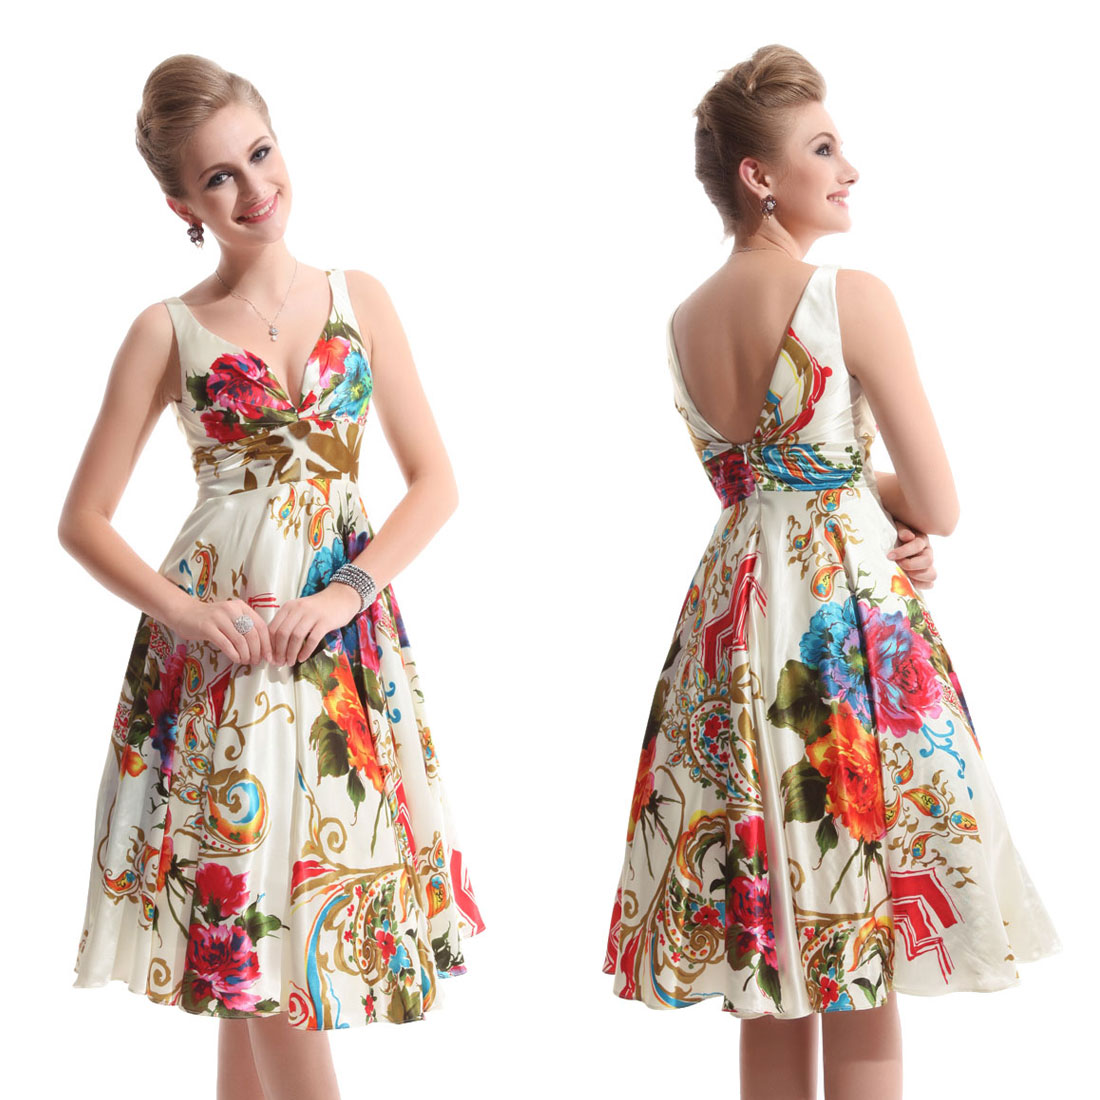 Double-V-neck-Girls-Printed-Cocktail-Party-Graduation-Prom-Dress-03381-Size-6-18